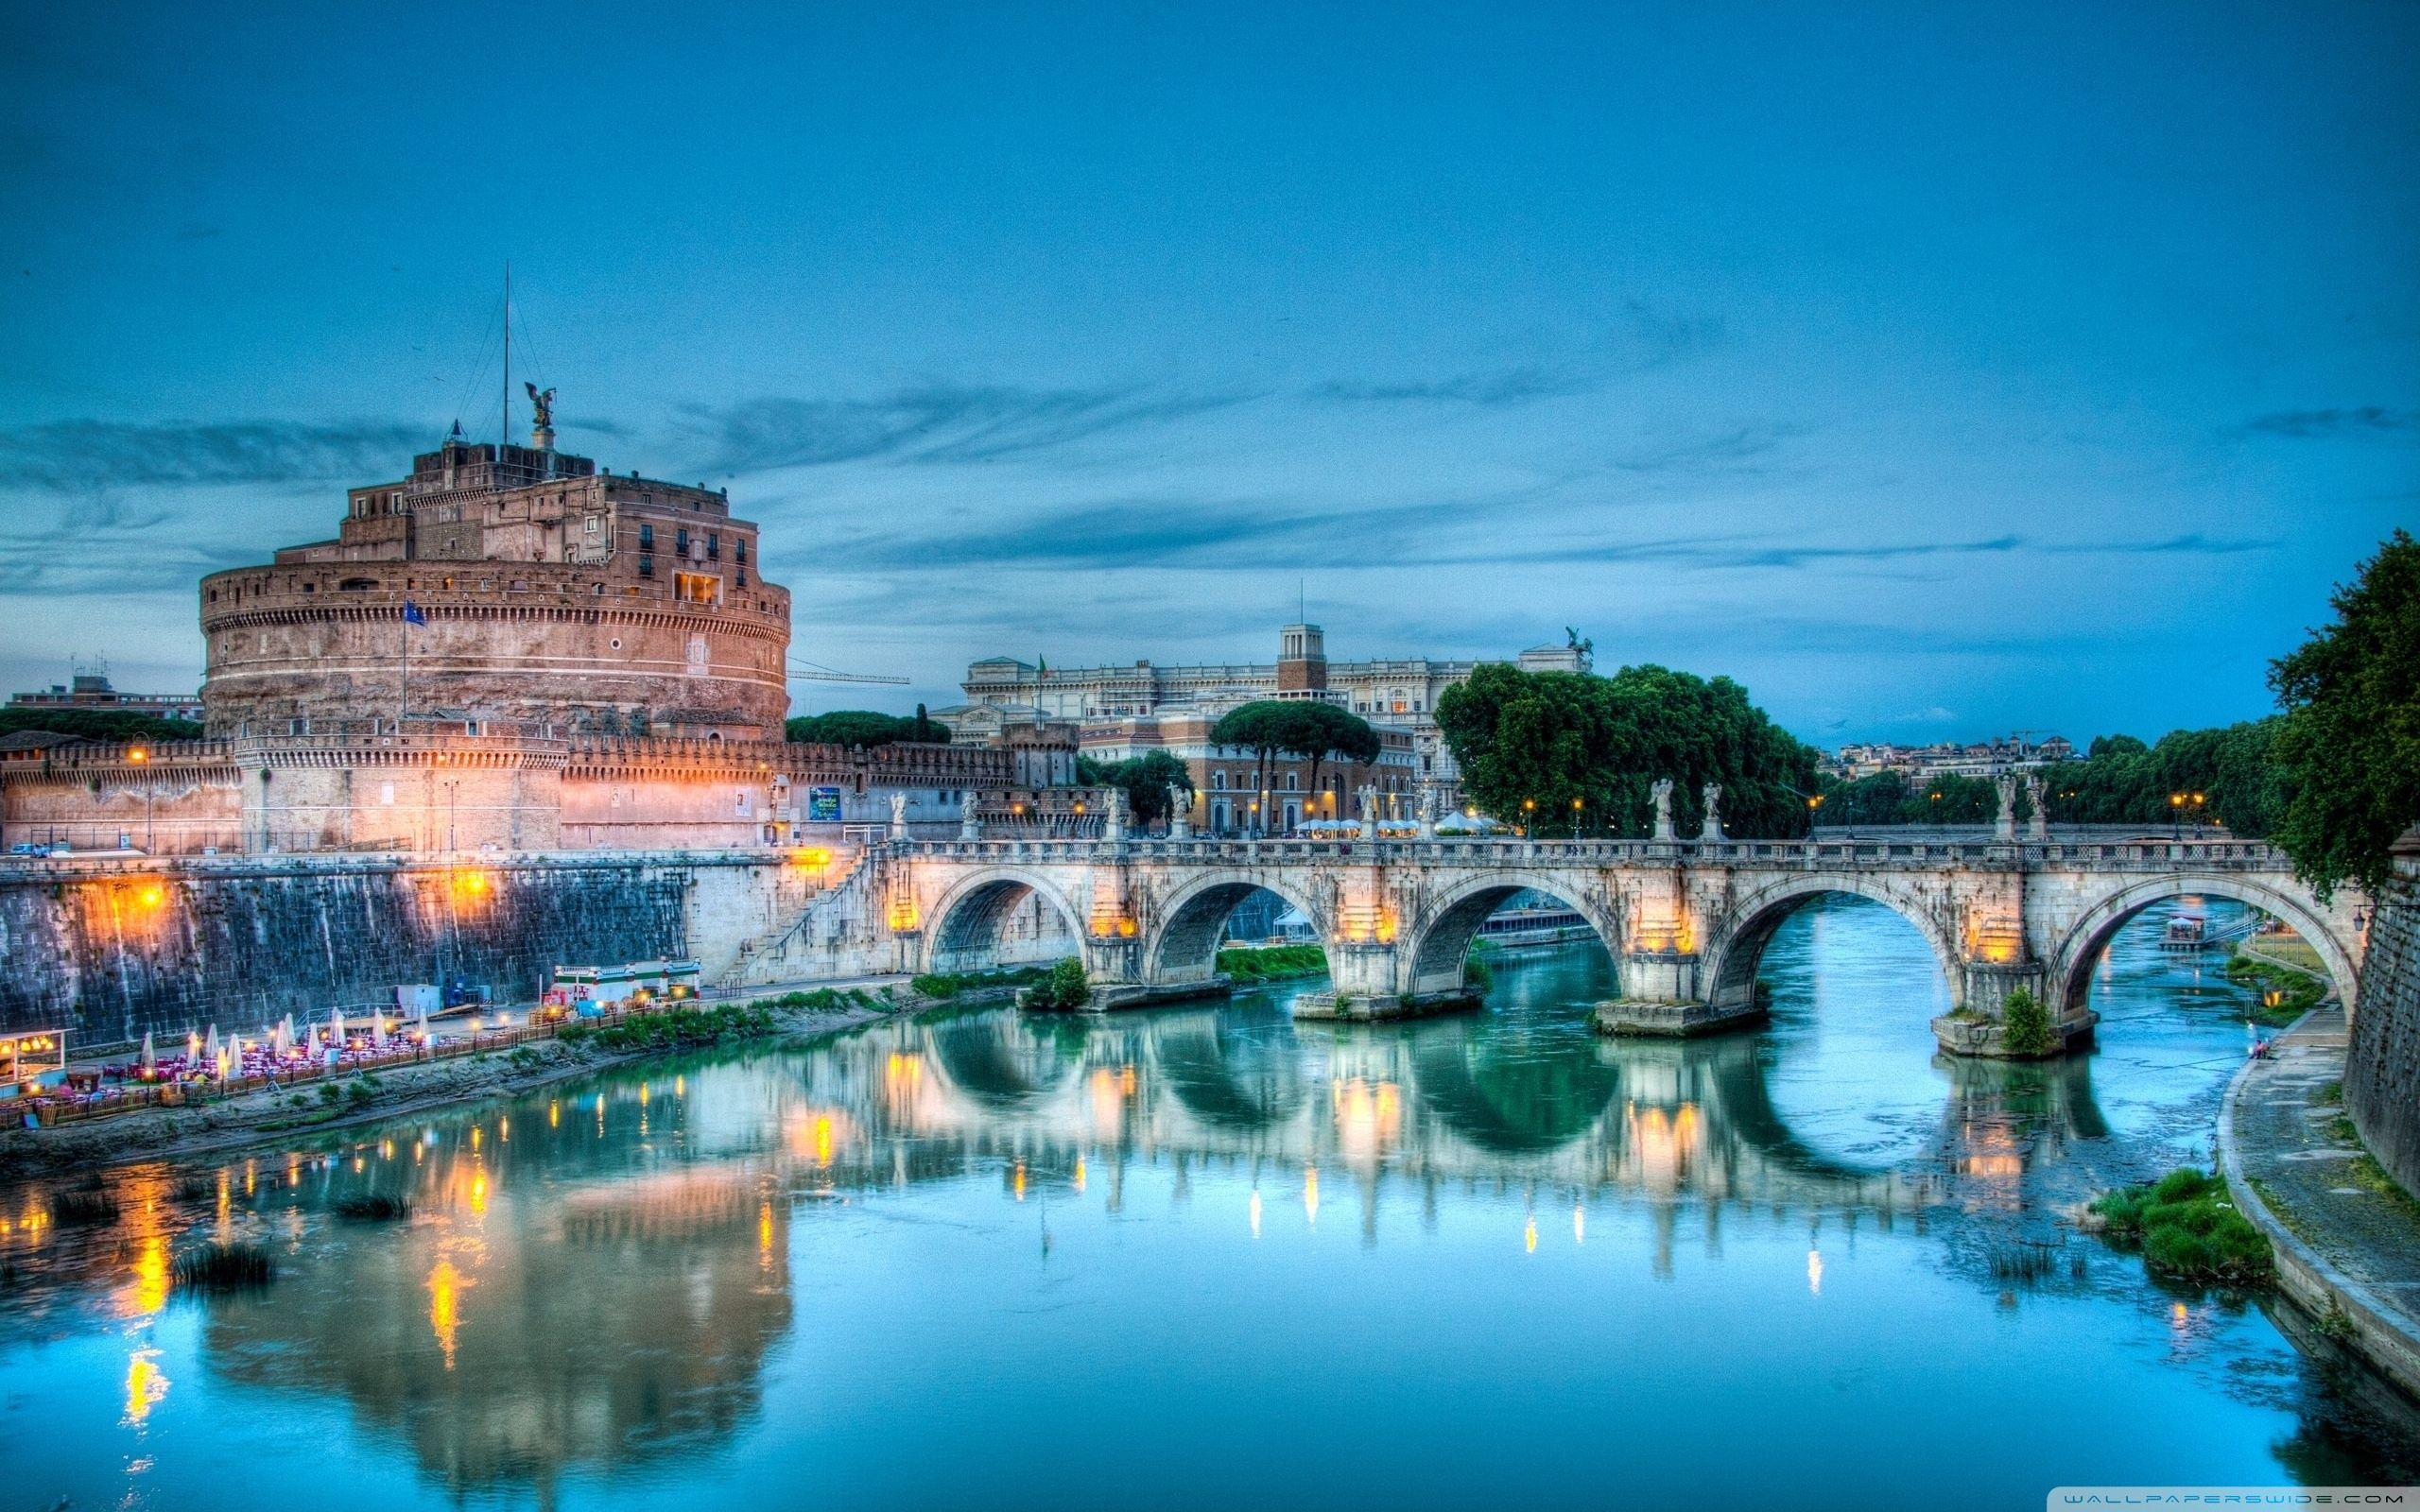 Wallpapers Of Italy Castel Sant Angelo Tiber River Rome Italy 4k Hd Desktop